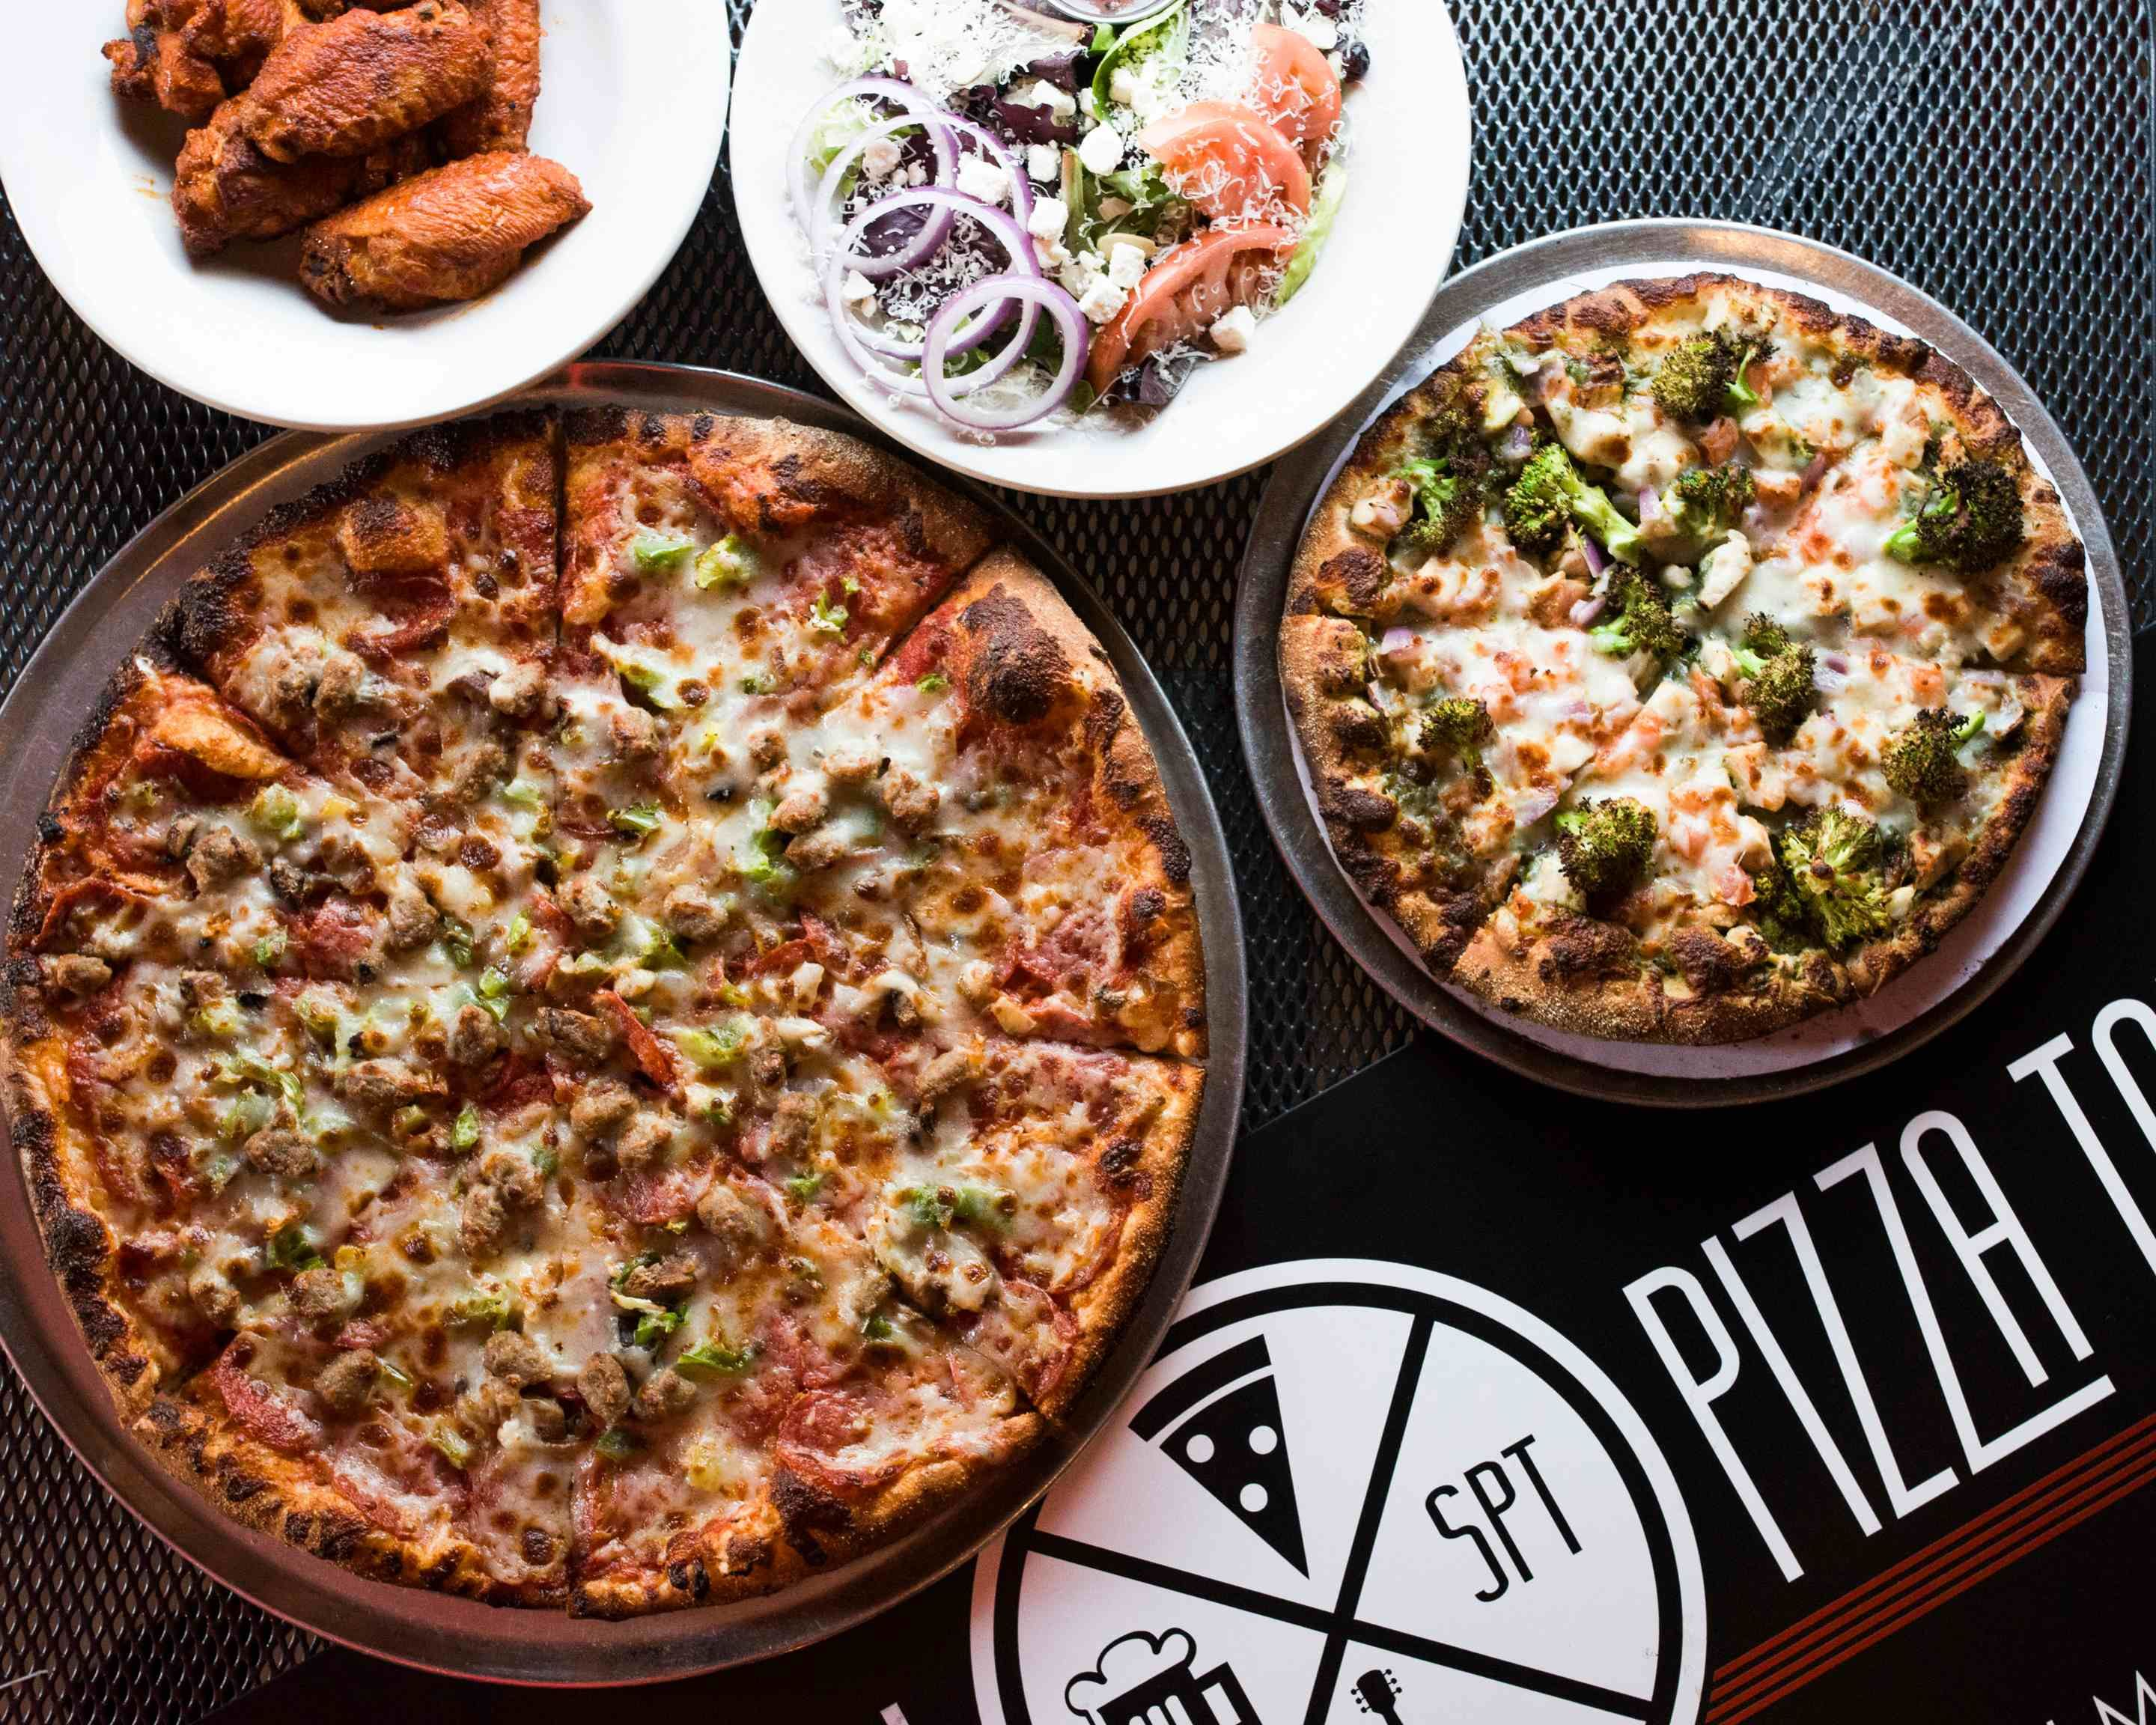 Order South Park Pizza Tavern Delivery Online | Dayton ...